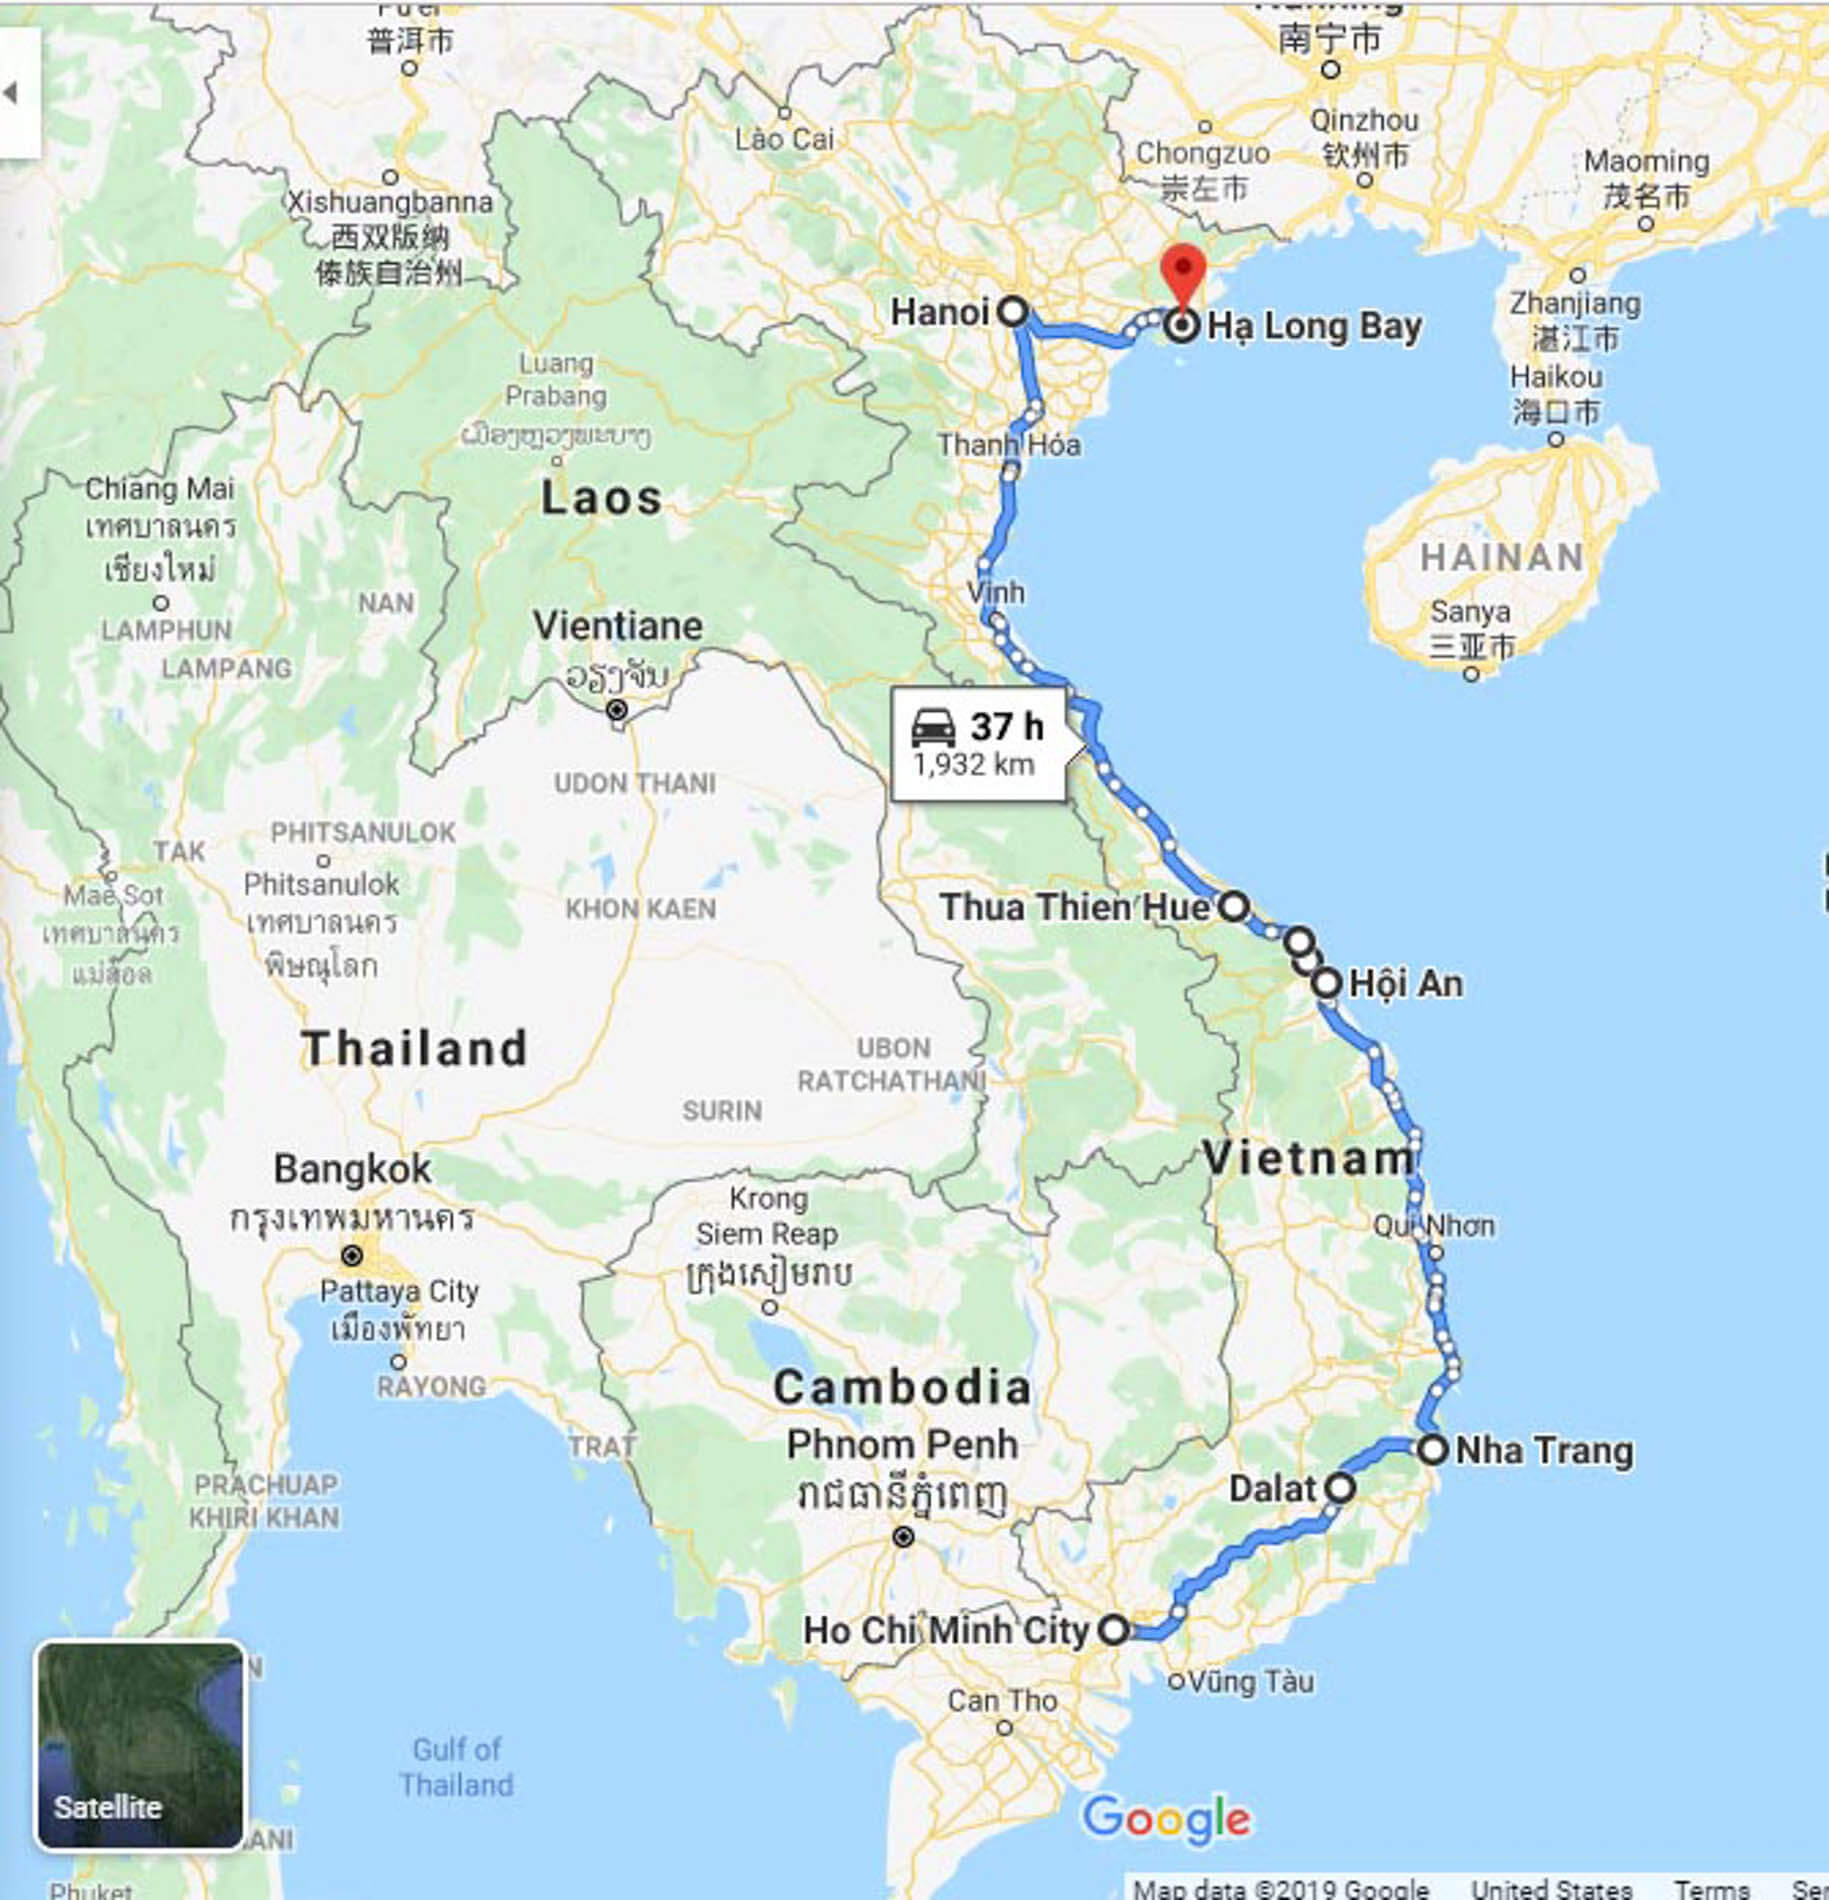 Map route used in Top Gear Vietnam